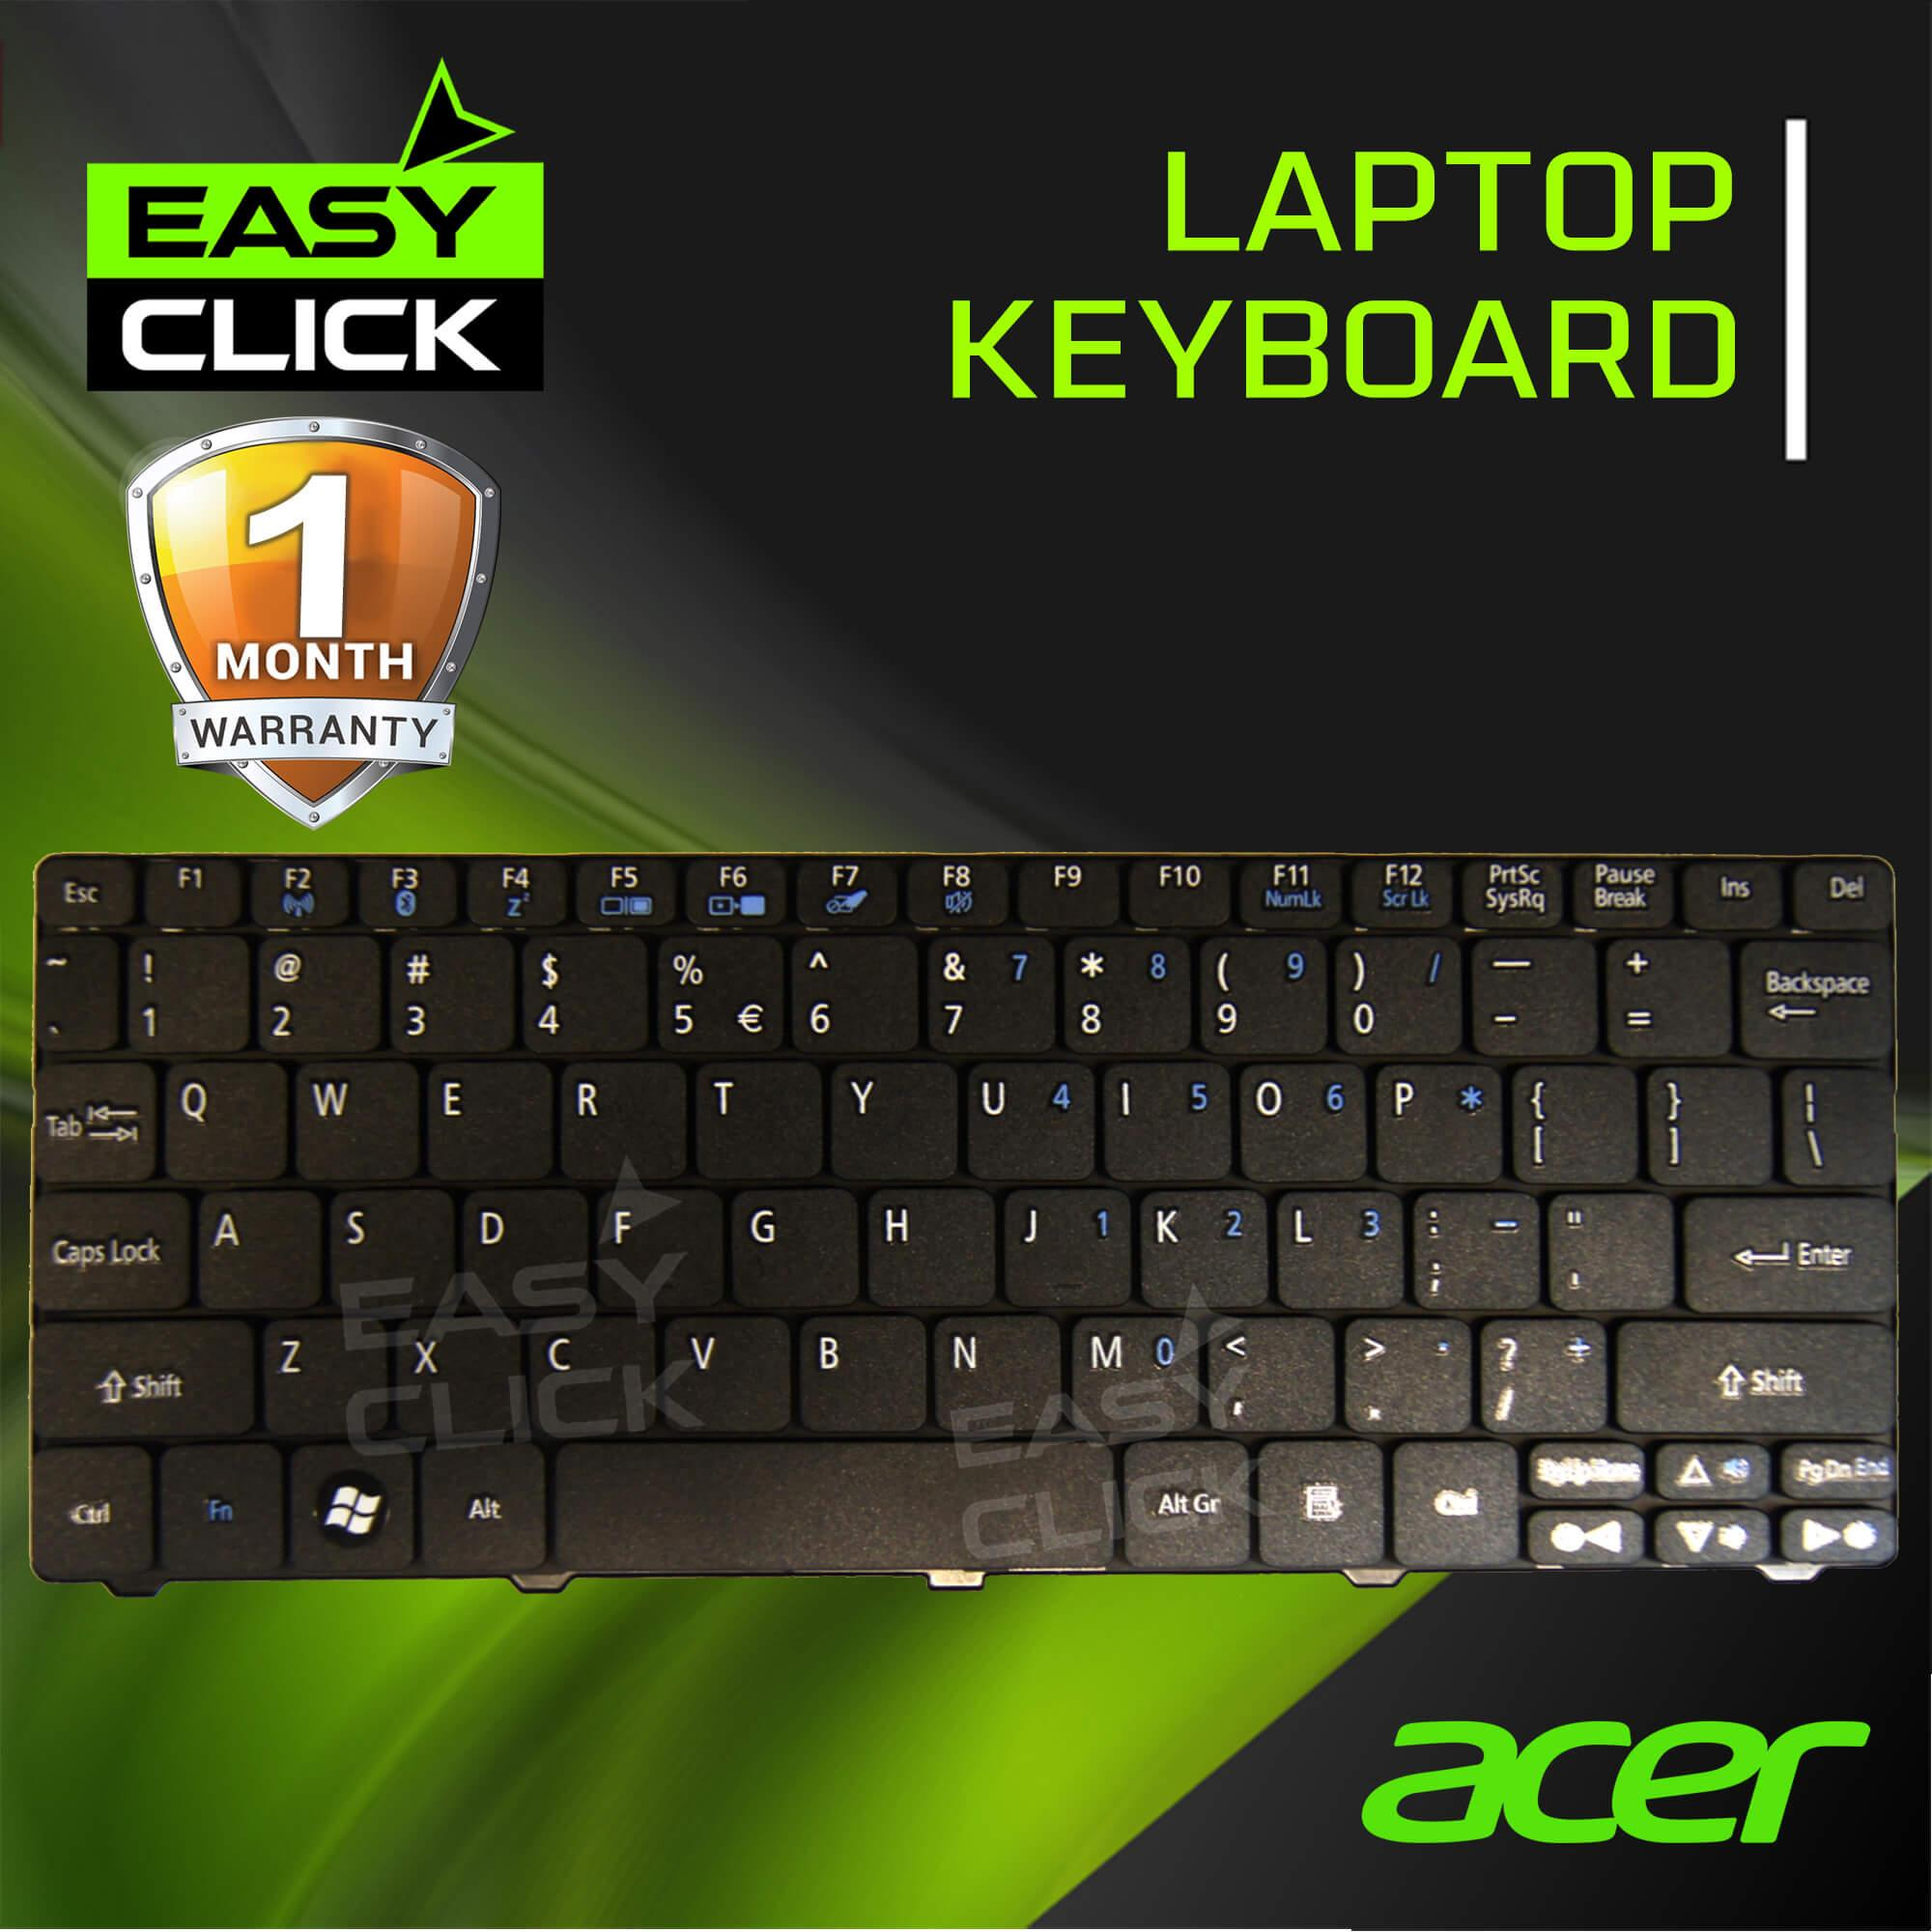 Product details of Laptop Acer Keyboard Aspire One D255 D255E D257 D260 D270 521 522 533